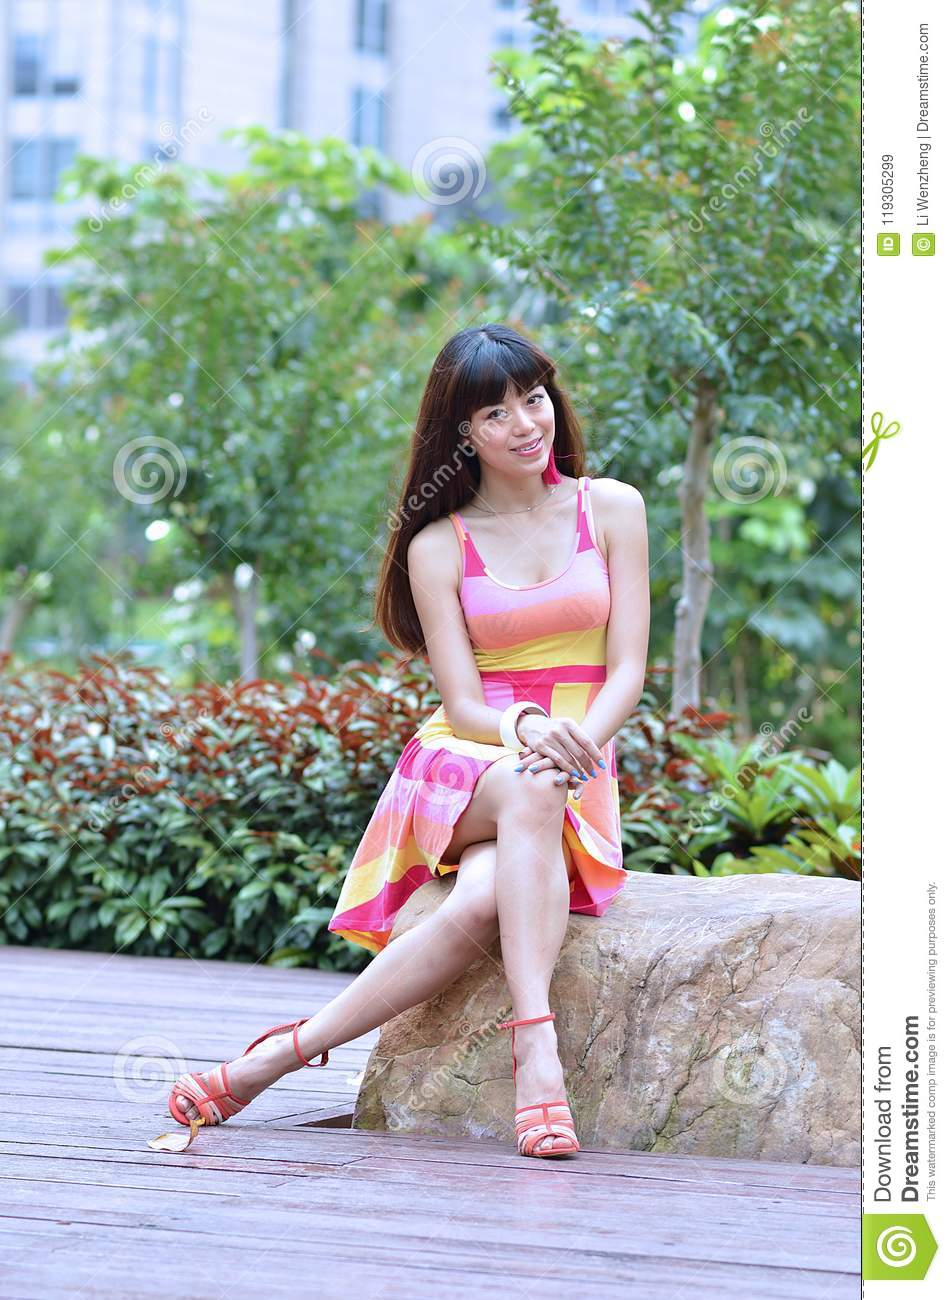 beautiful and sex asian girl shows her youth in the park stock image